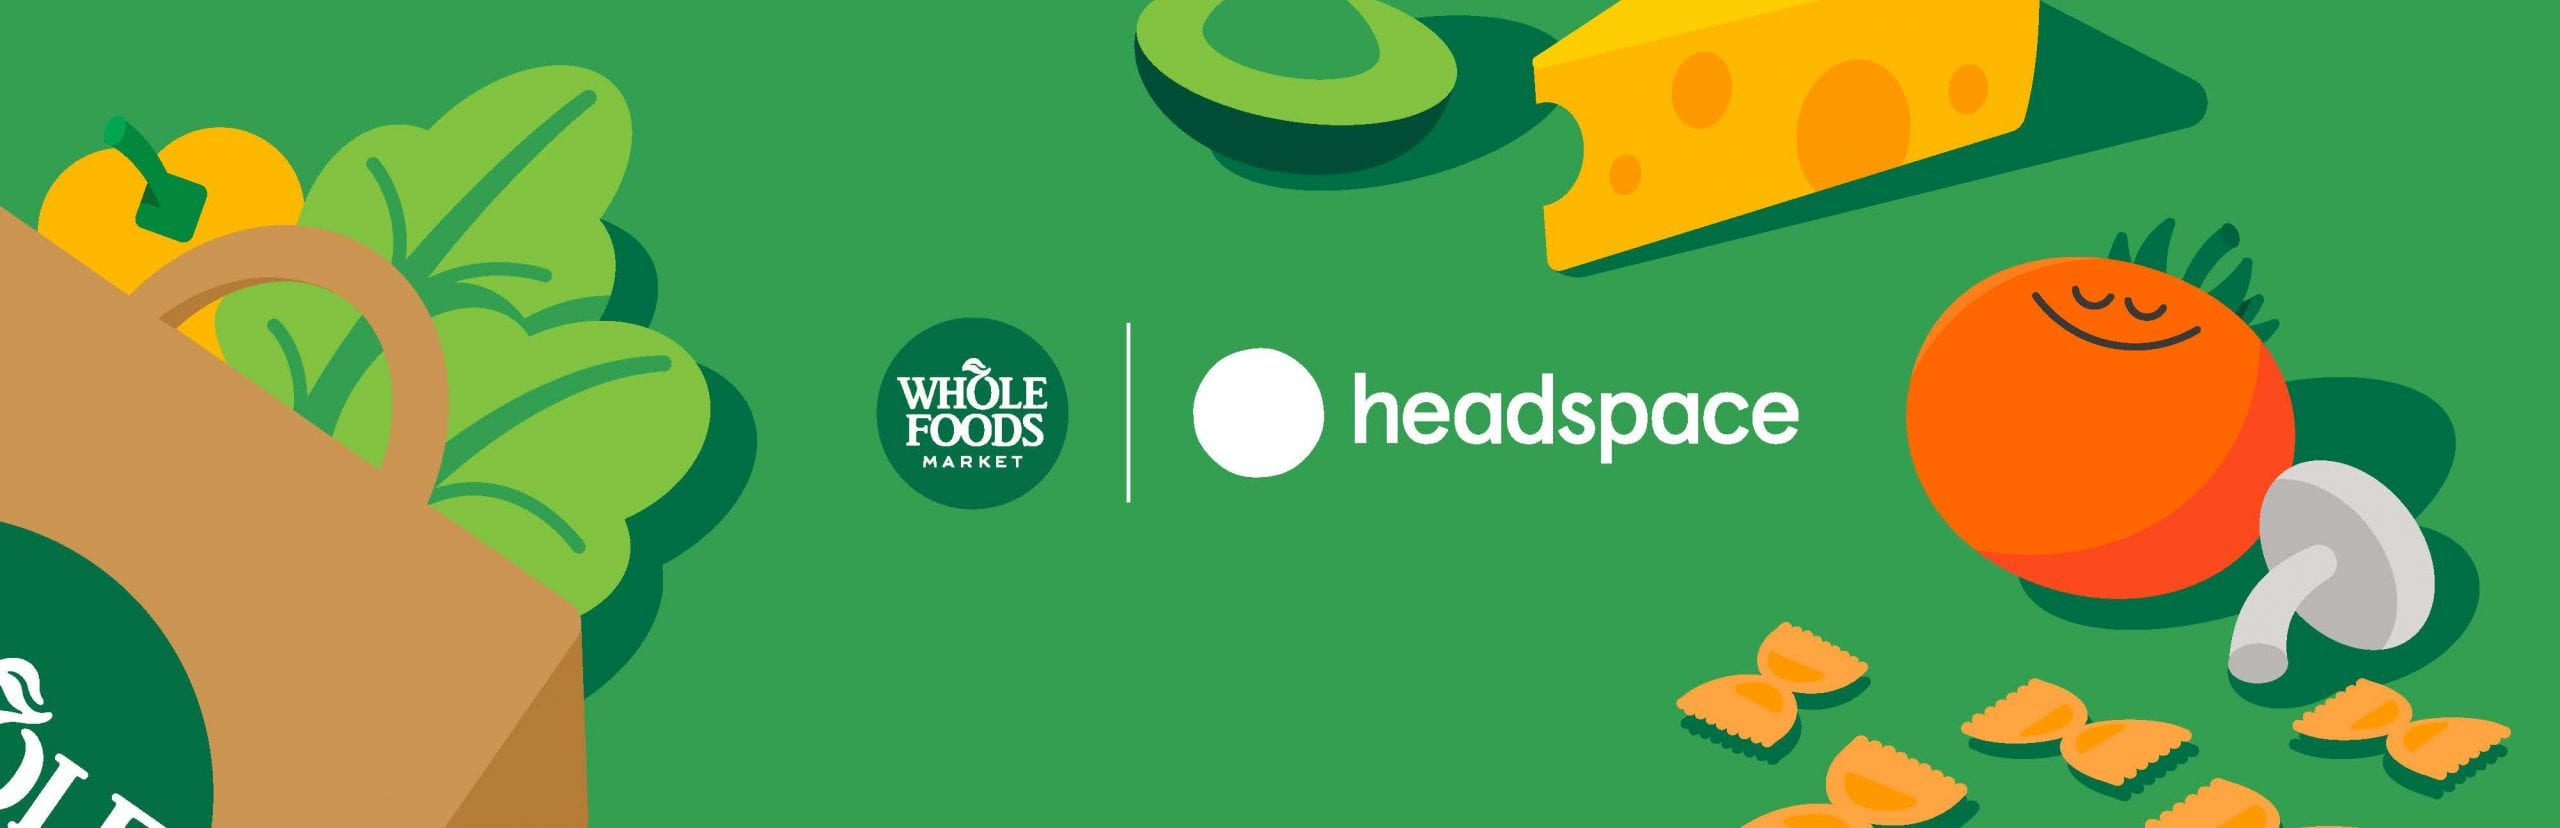 Whole Foods Market and Headspace team up to support well-being